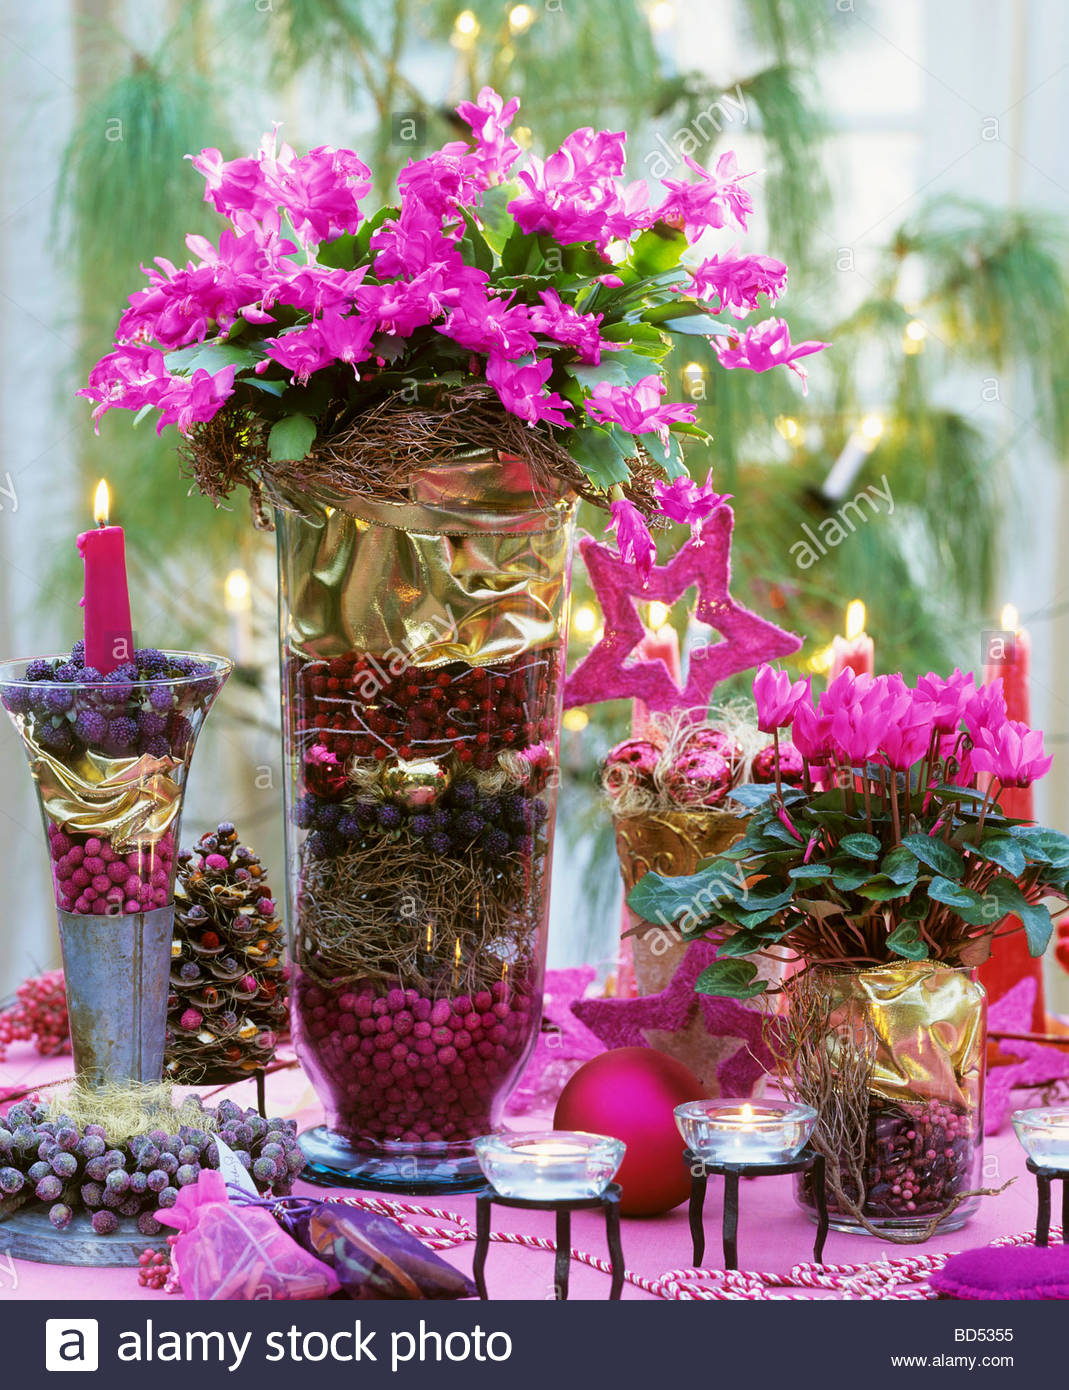 christmas cactus and cyclamen with christmas decorations stock image - Cactus Christmas Decorations